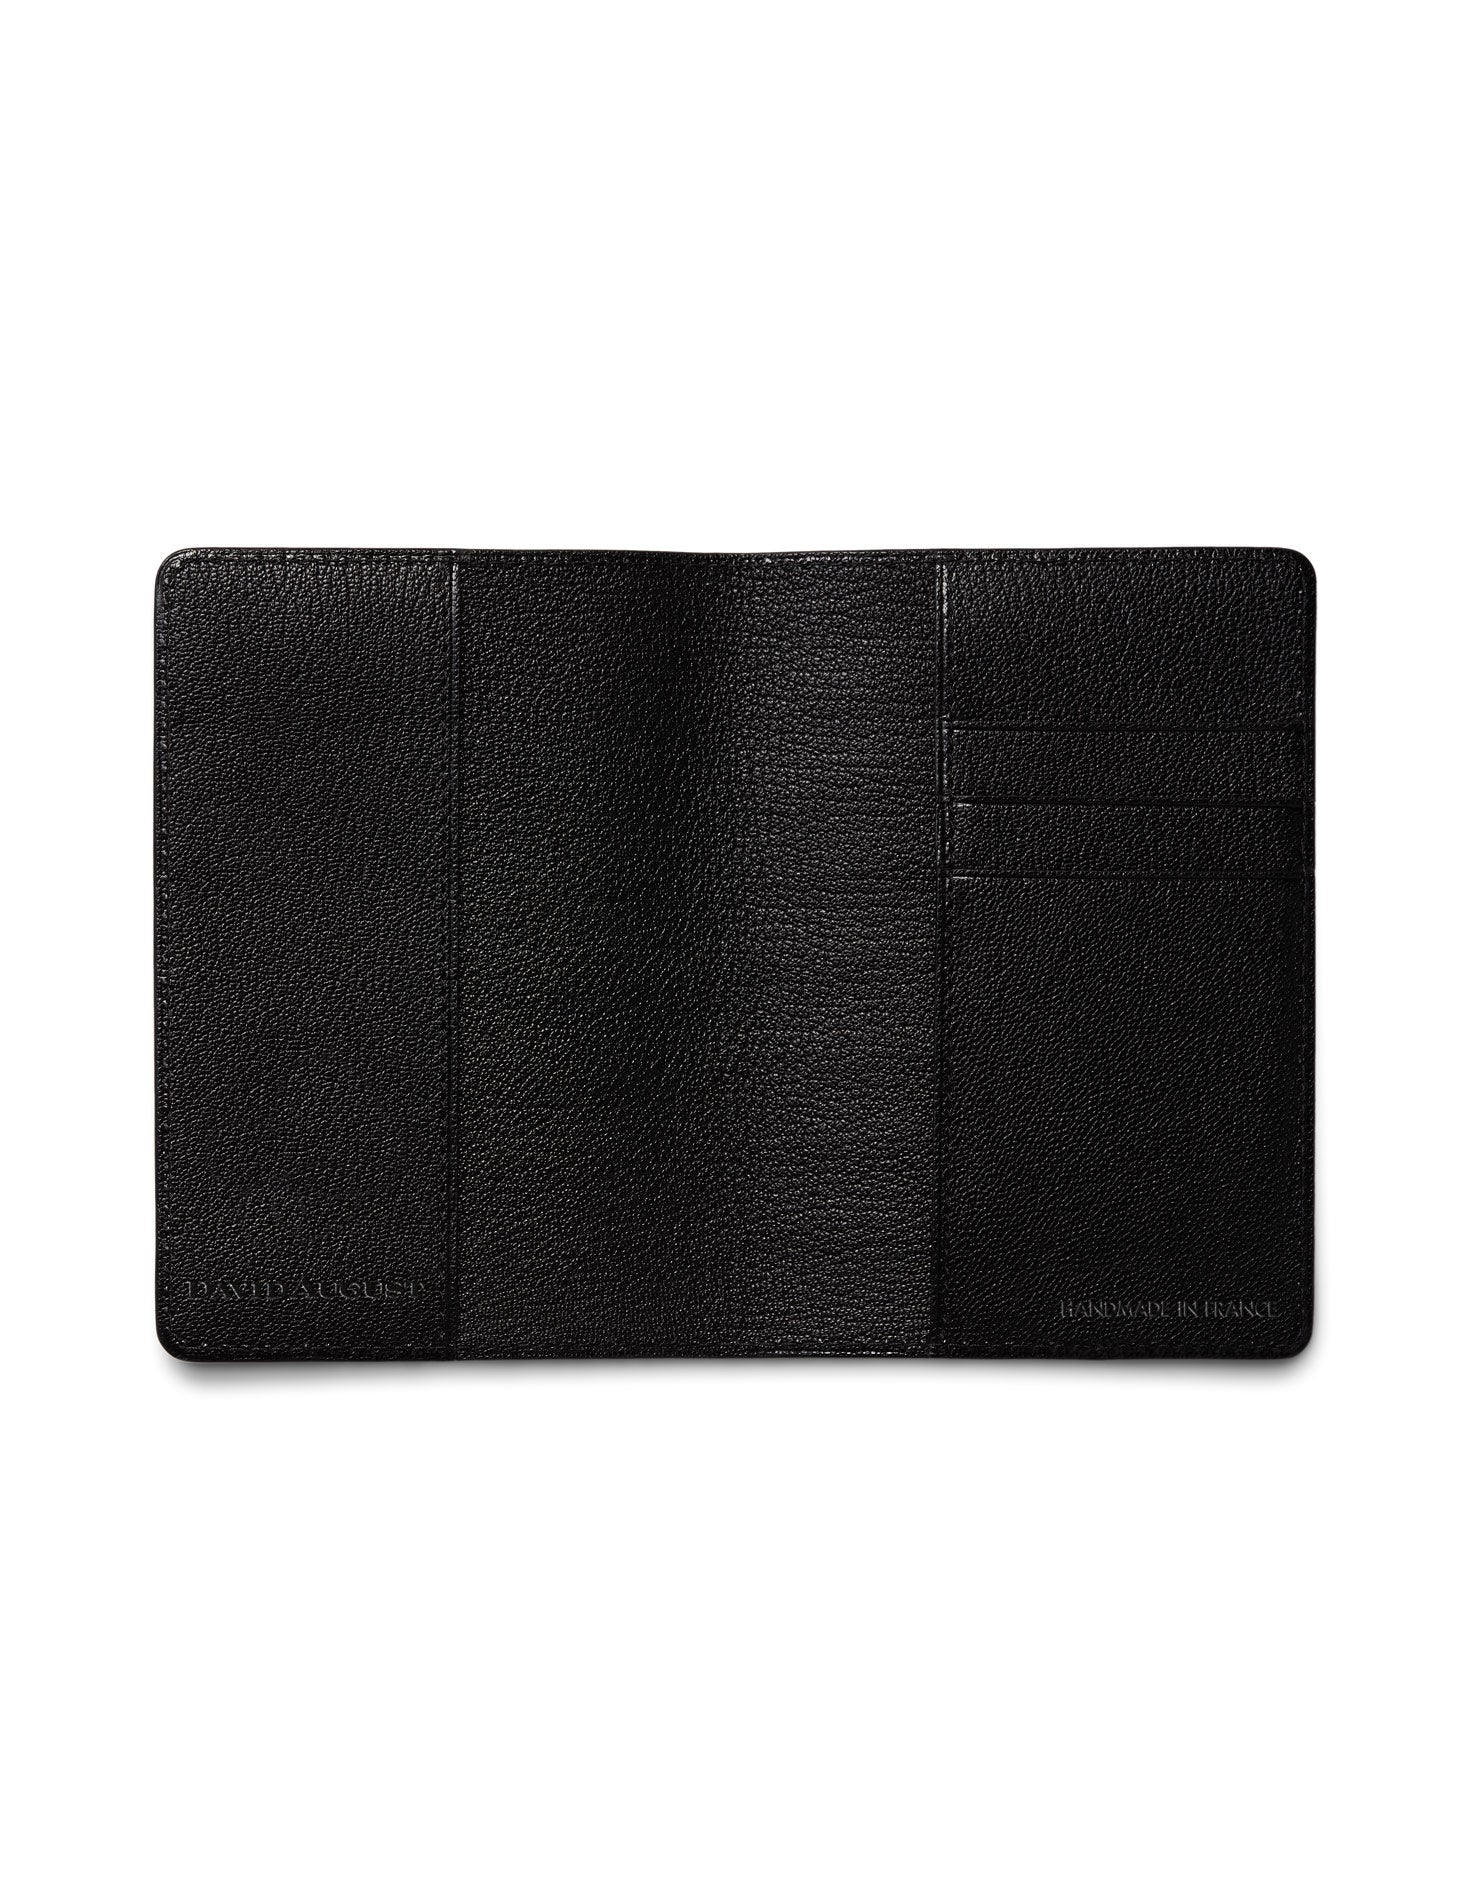 David August Luxury Genuine Alligator Passport Holder in Black